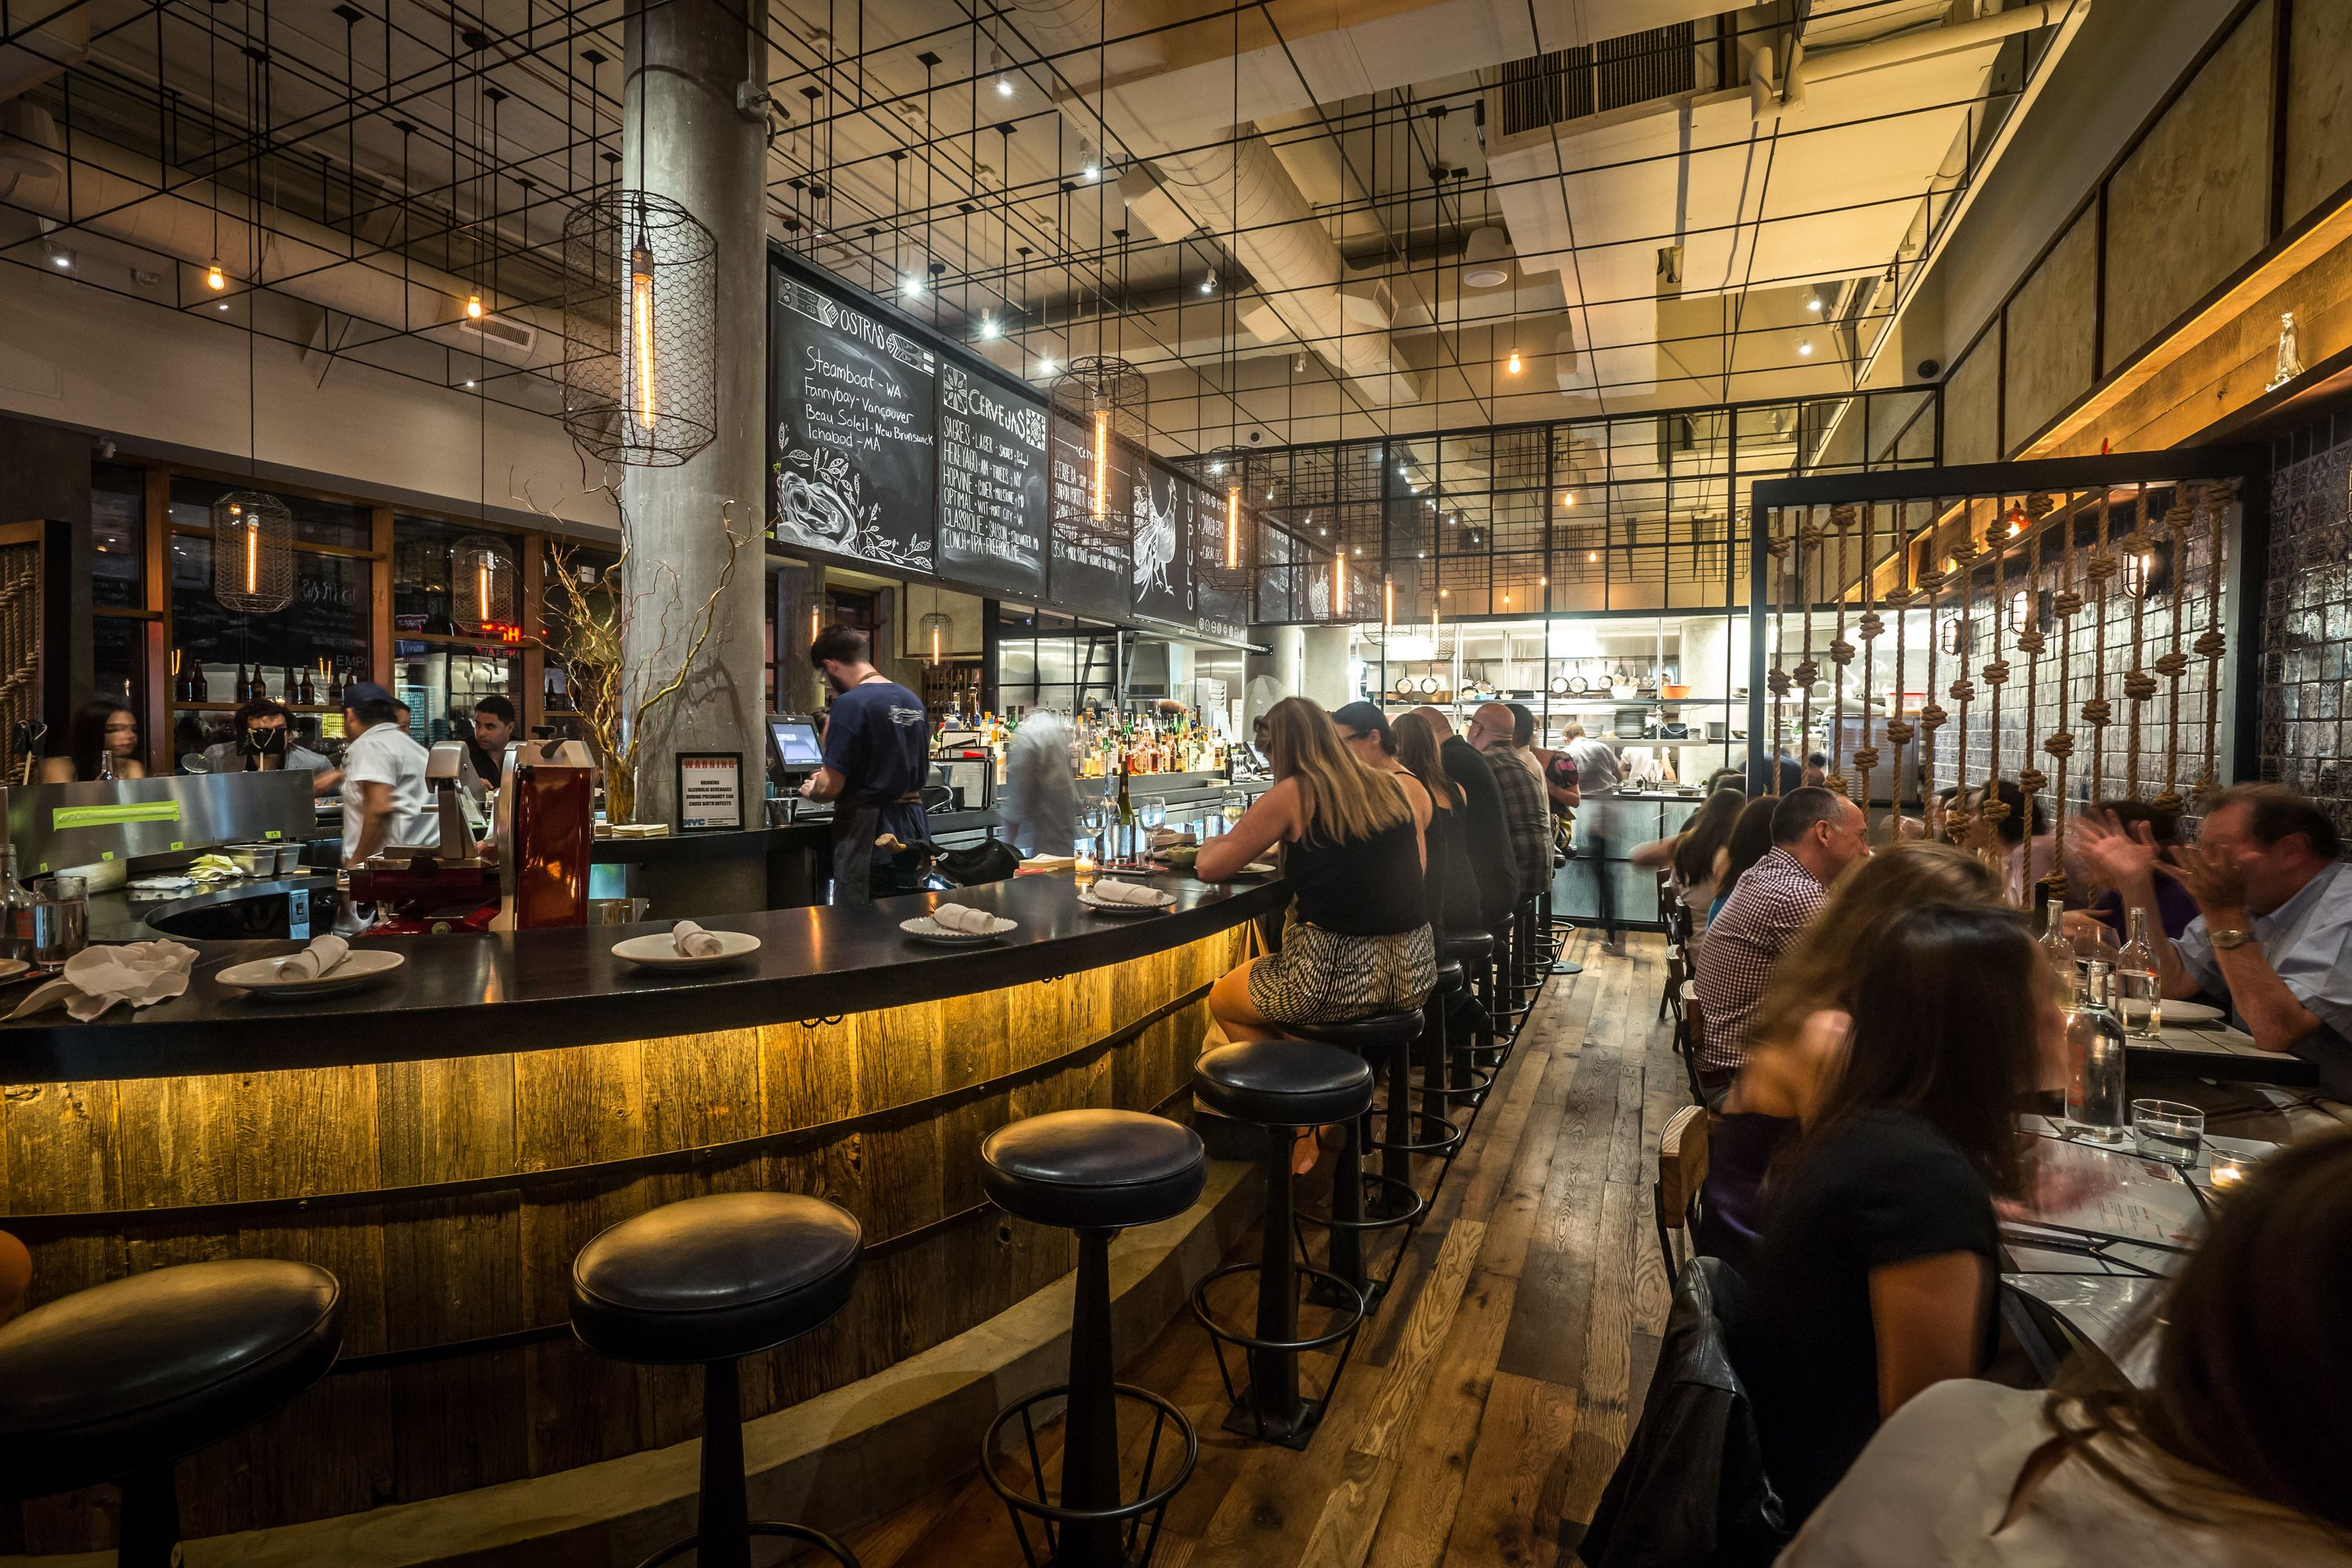 The Best Restaurants Near Penn Station